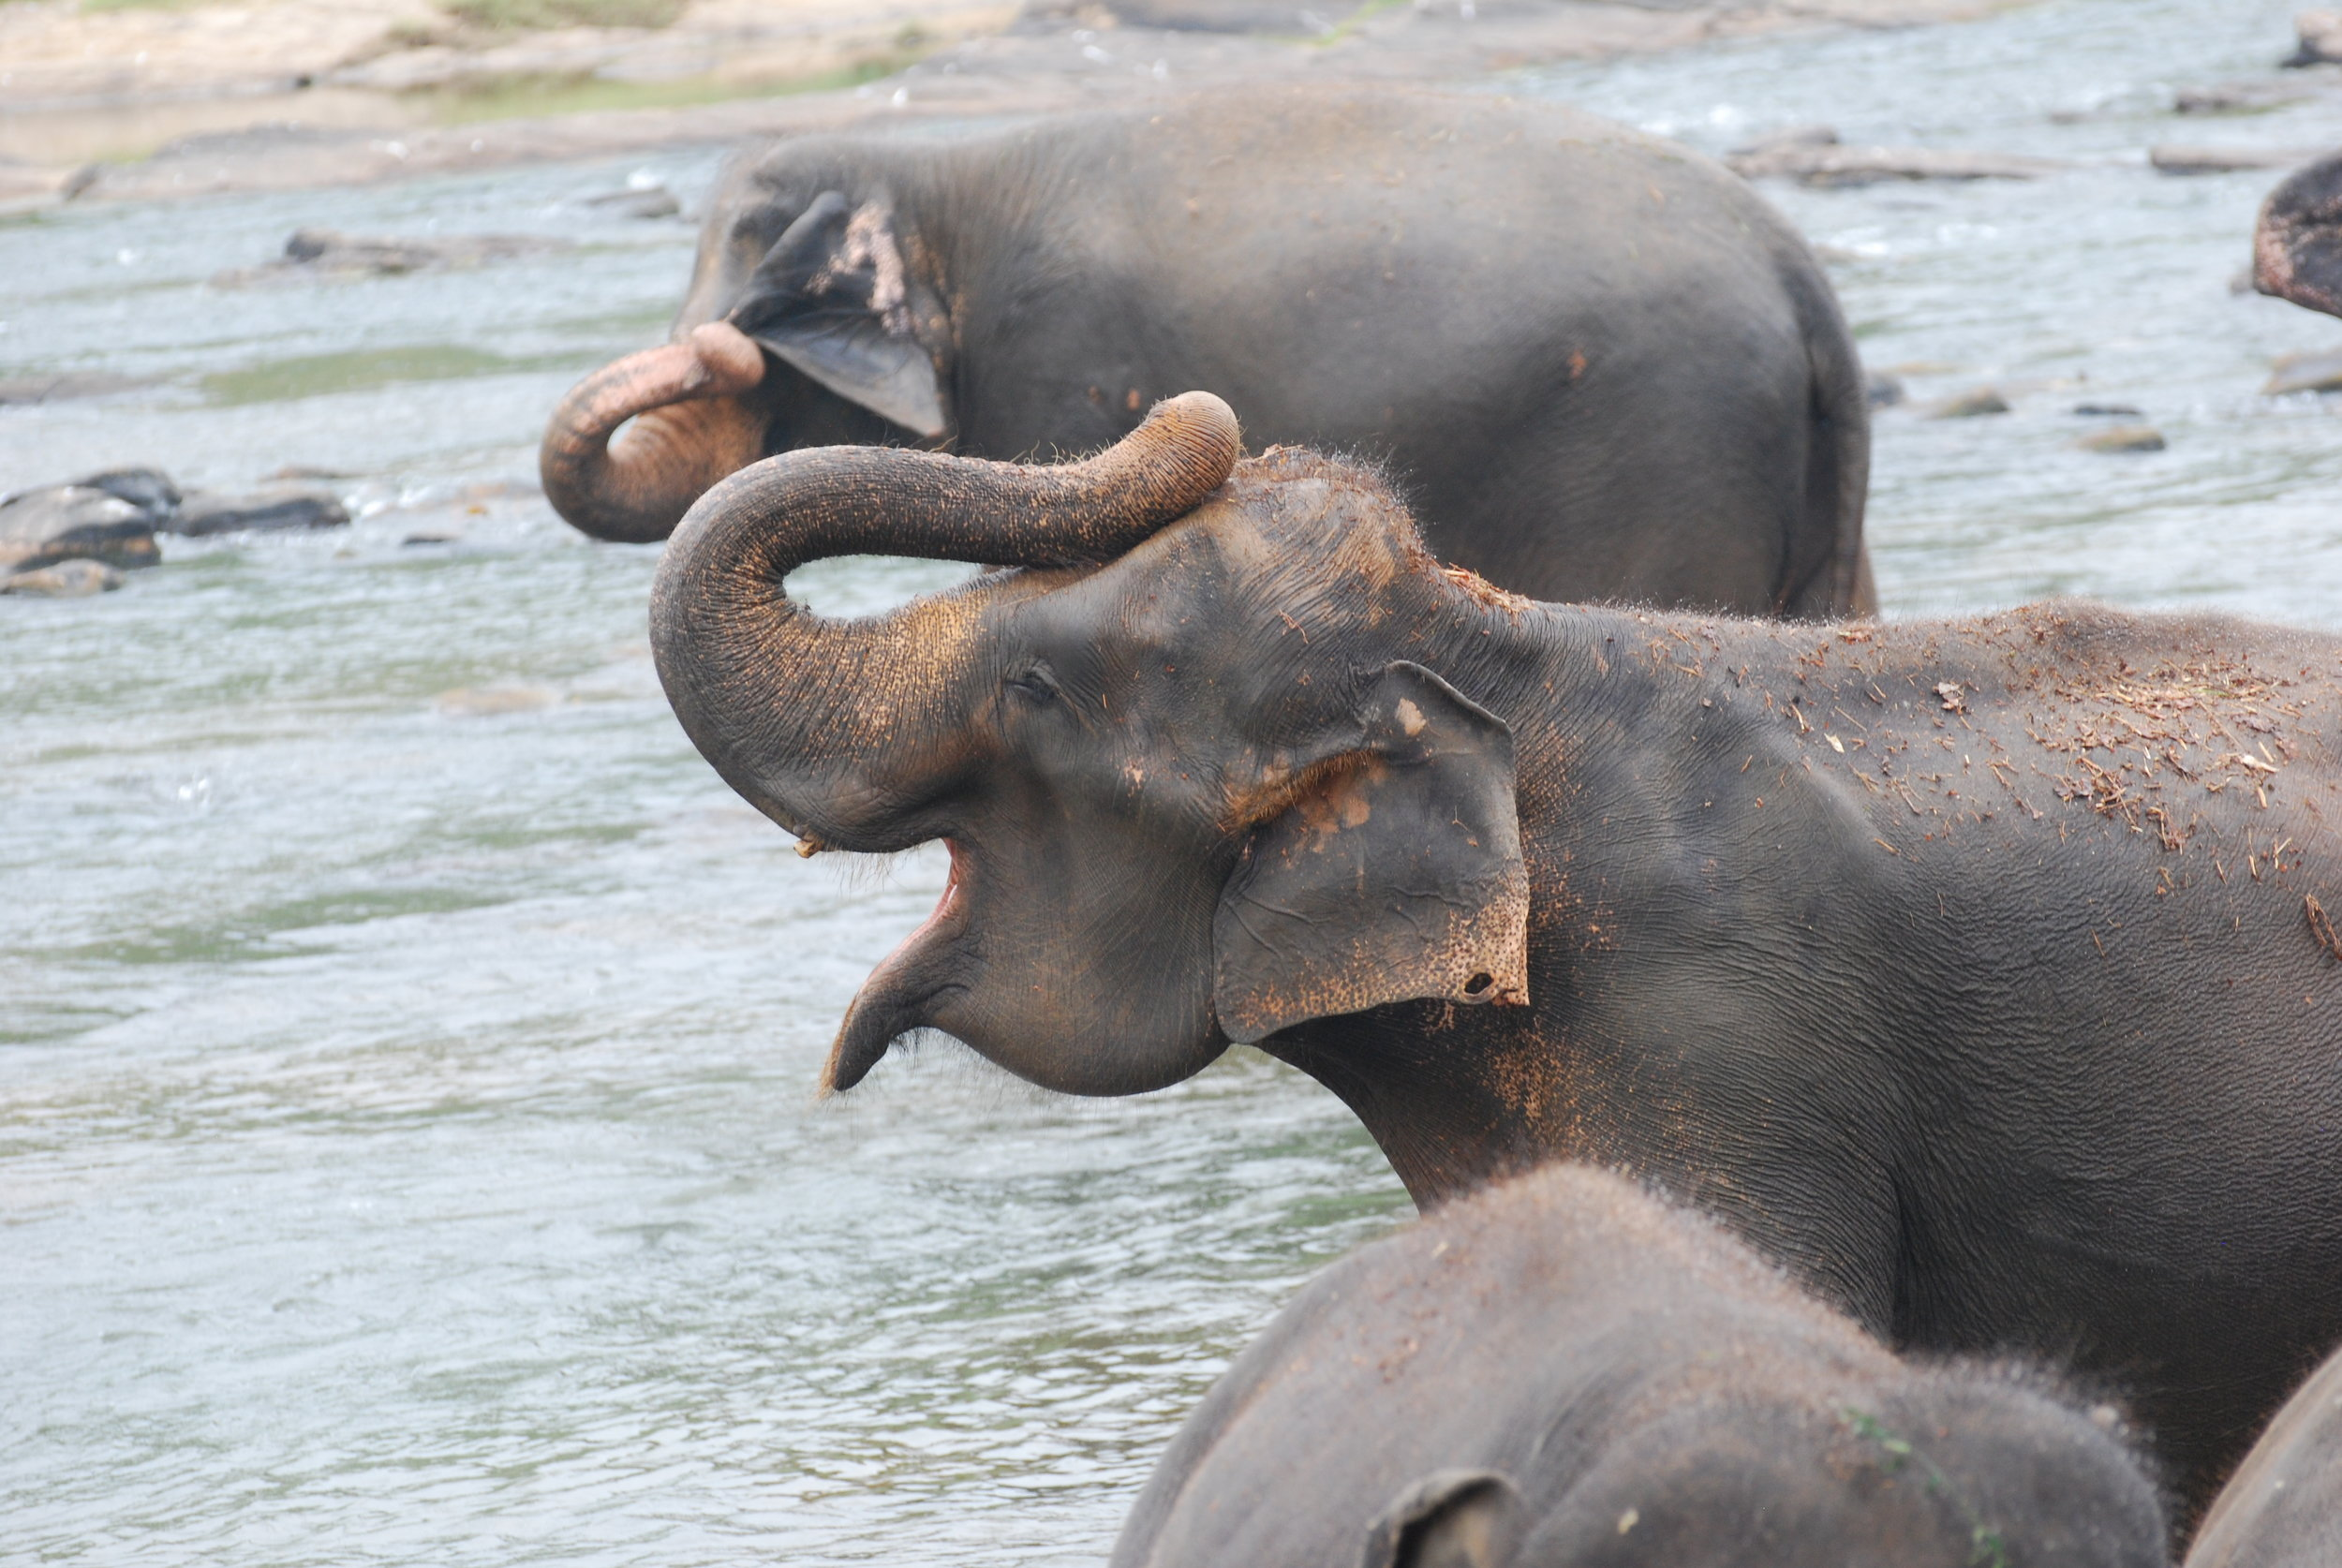 Female elephants in the Maha Oya during a bathing session. 14 January 2019.